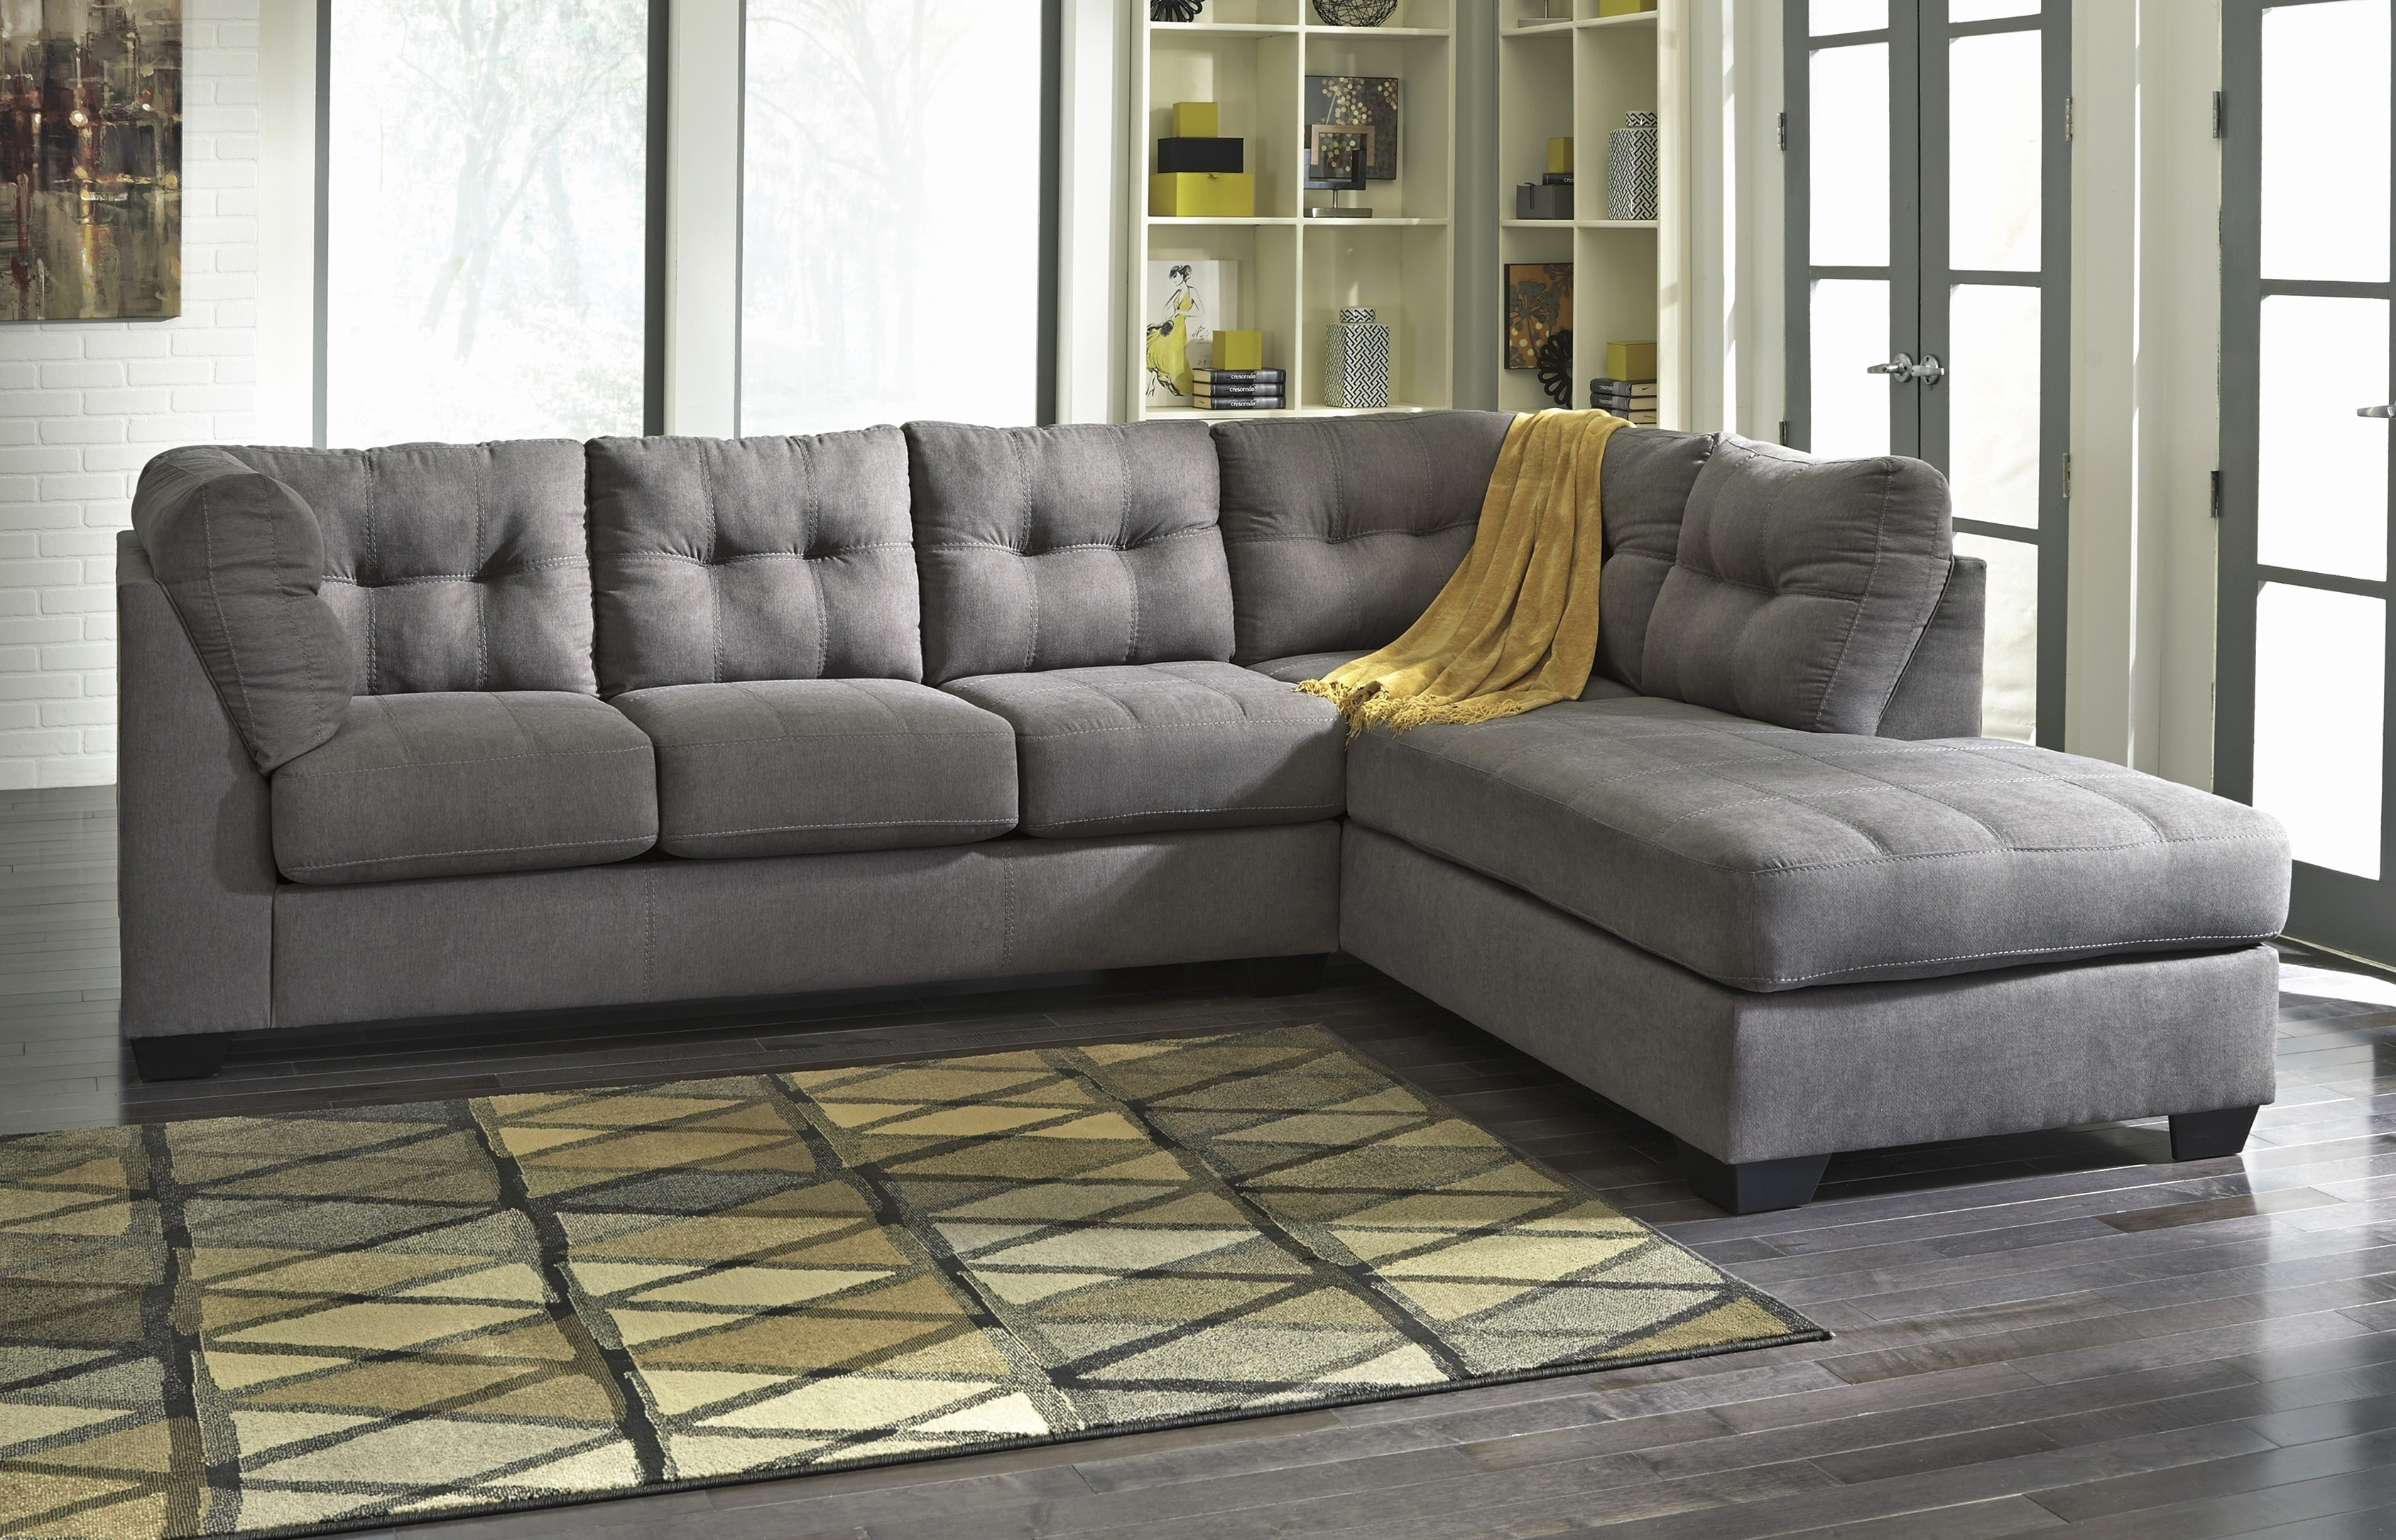 Unique Sectional Sleeper Sofa Ashley 2018 – Couches And Sofas Ideas With Sectional Sofas At Ashley (View 9 of 10)